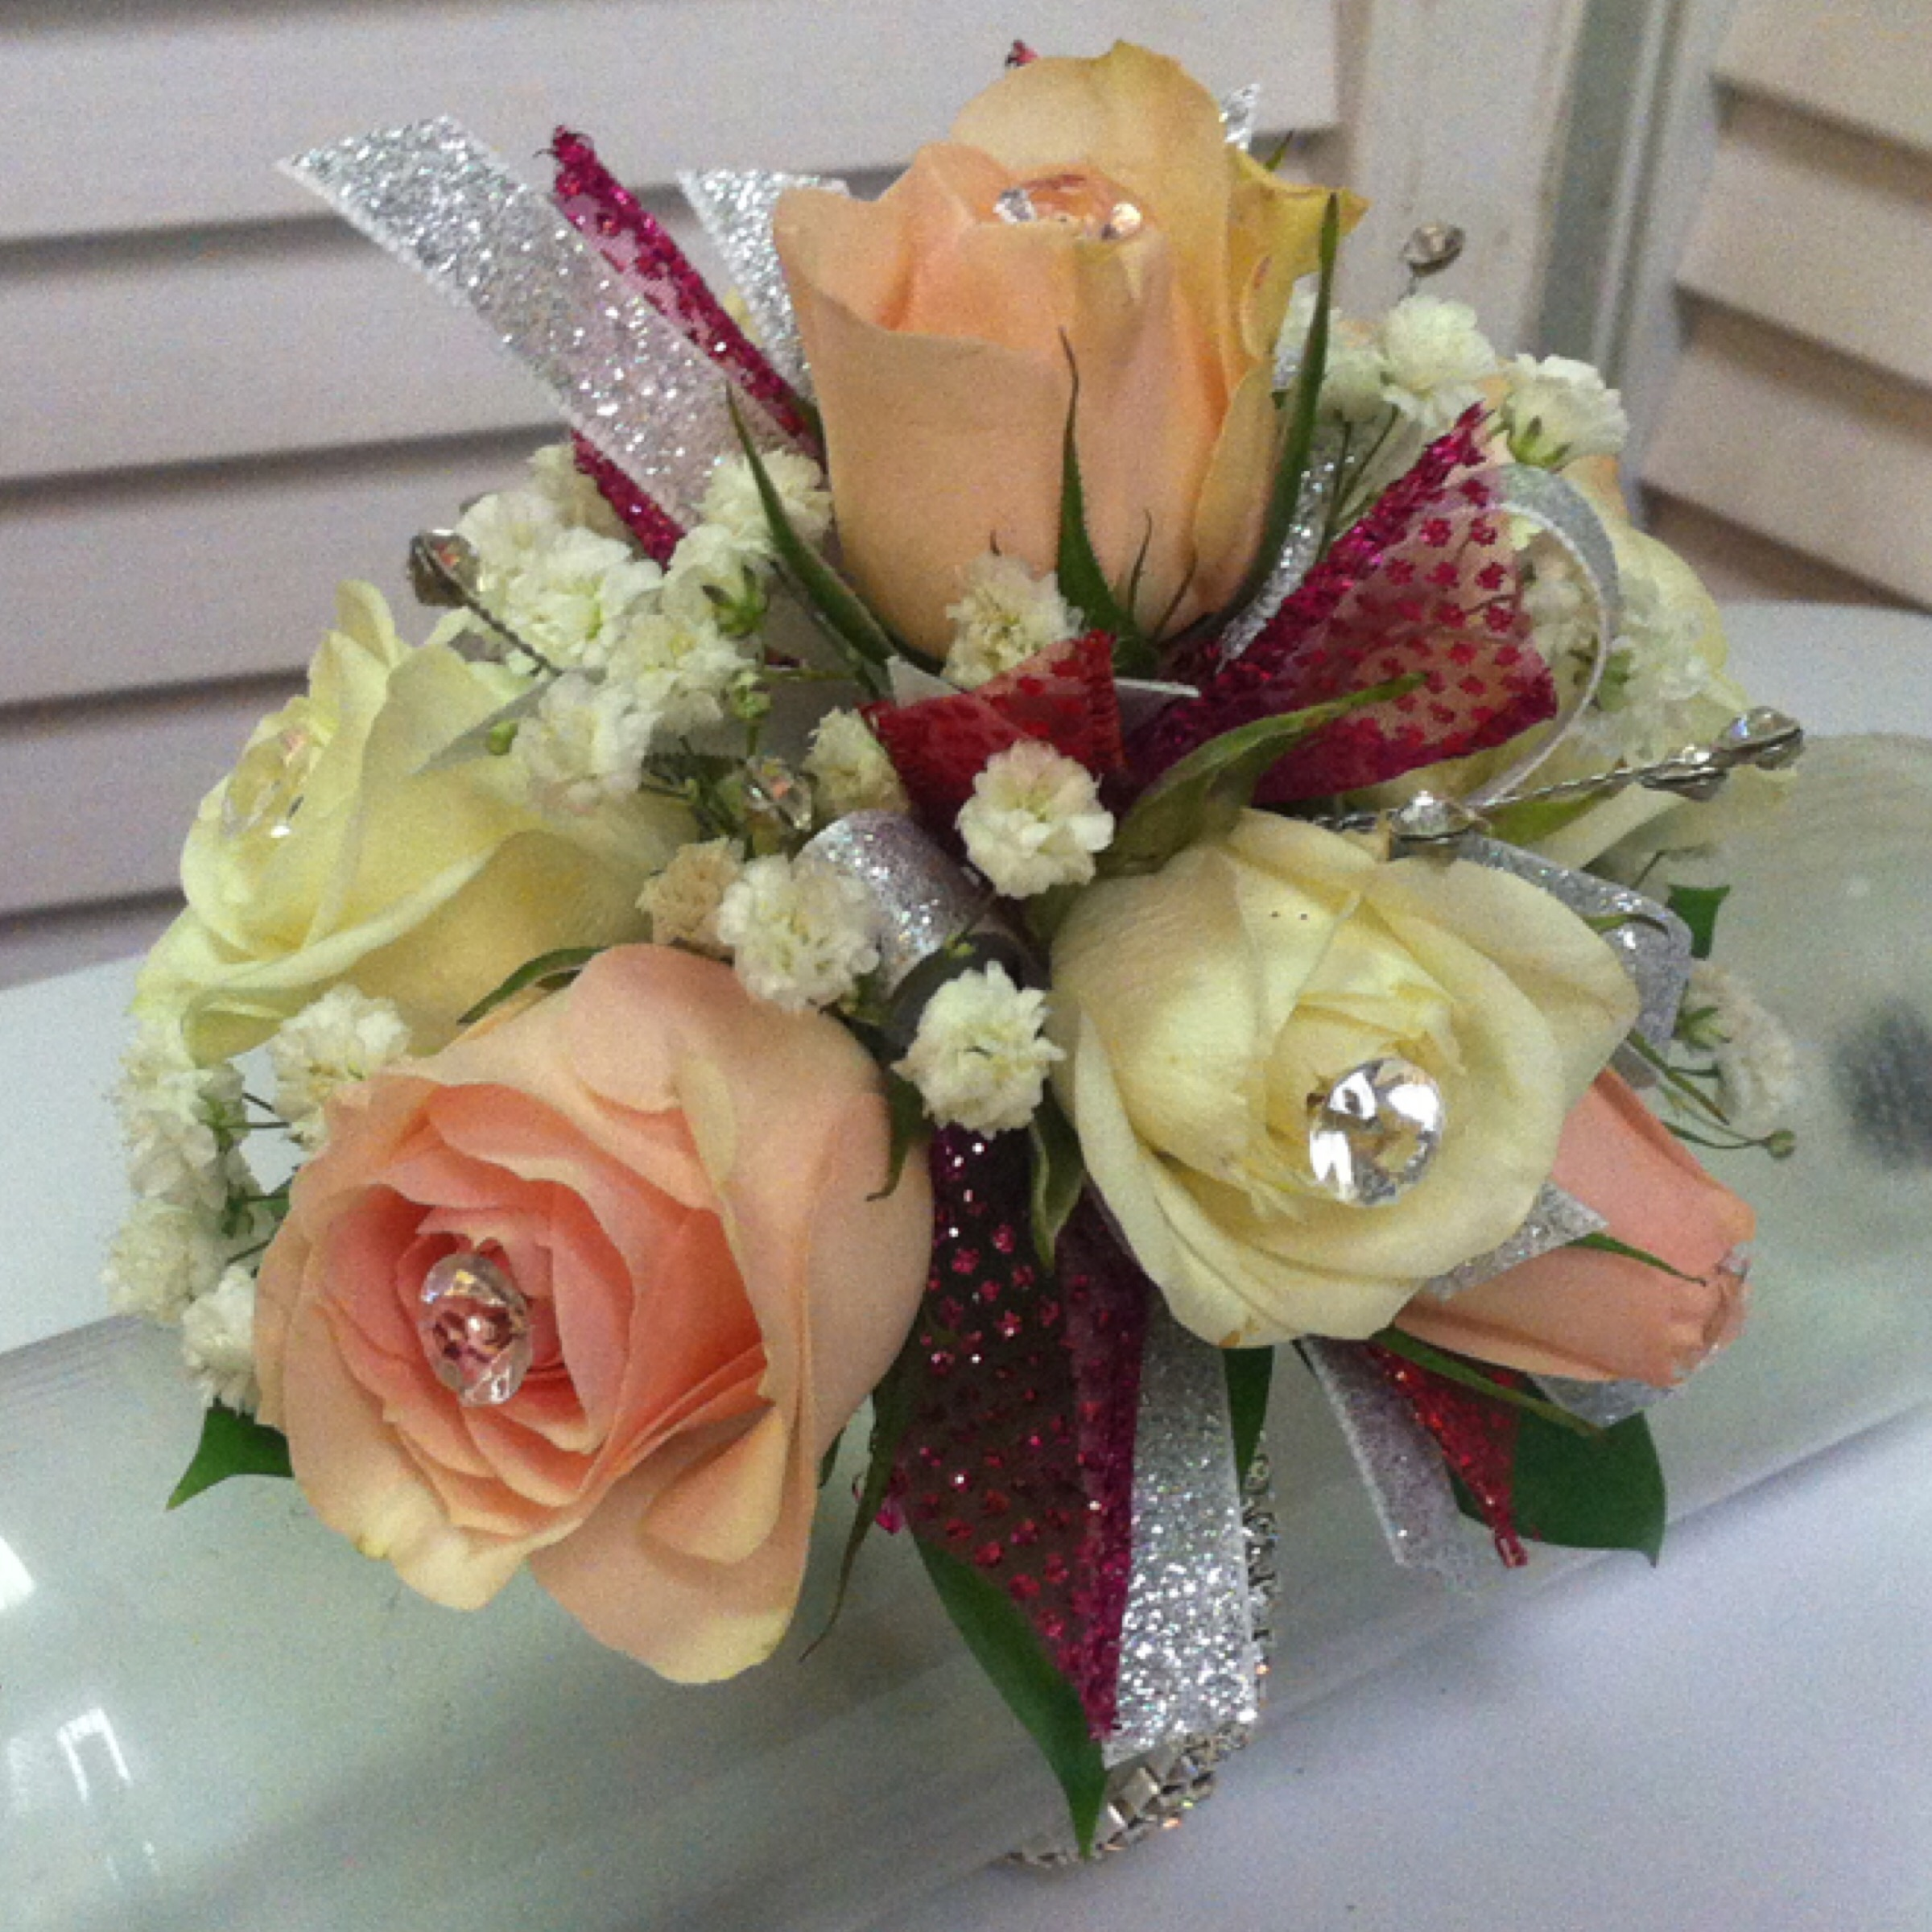 Plus Corsage (30) with Upgraded Bow (2) and Extra Flowers (5) $37